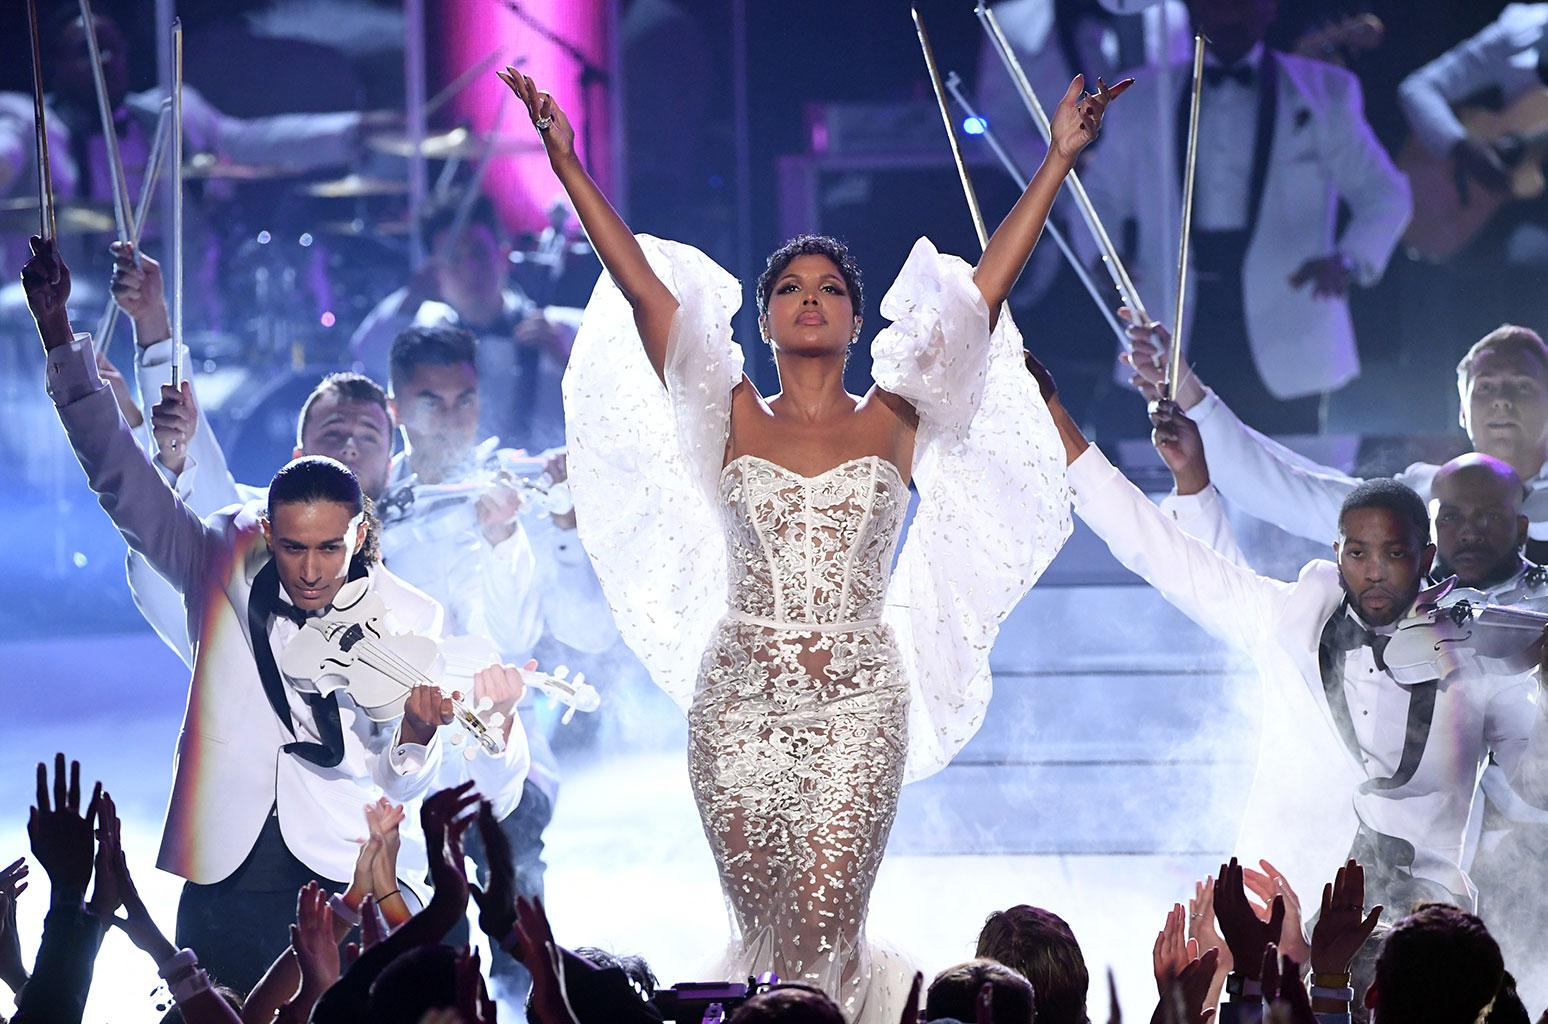 Toni Braxton's Fans Are Beyond Impressed Following Her AMAs Performance